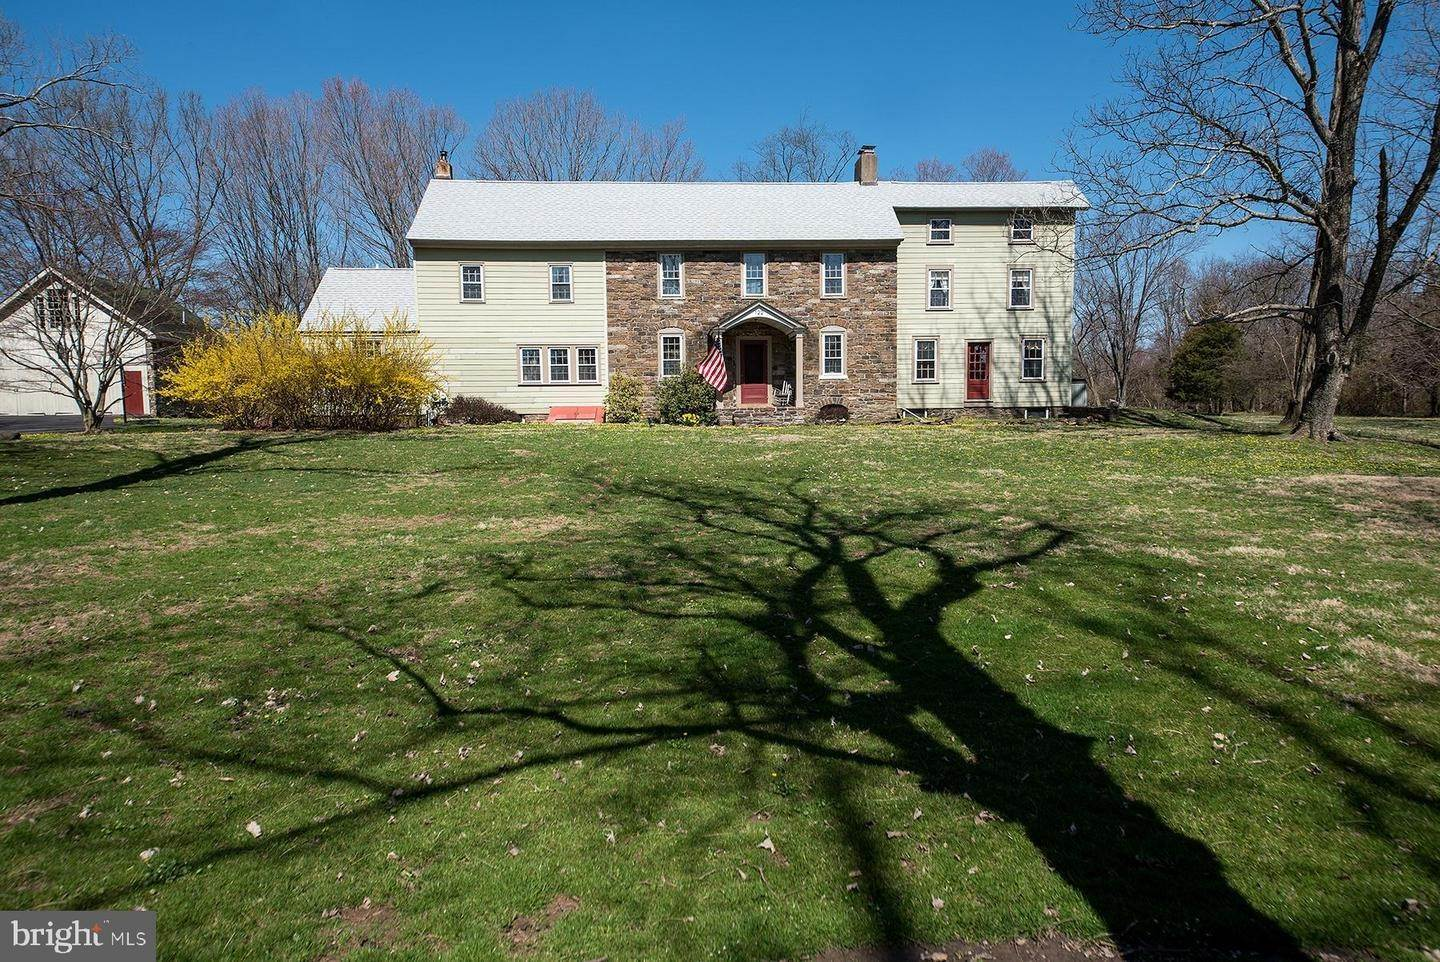 Detached House for Sale at 122 WALKER Road Washington Crossing, Pennsylvania 18977 United States